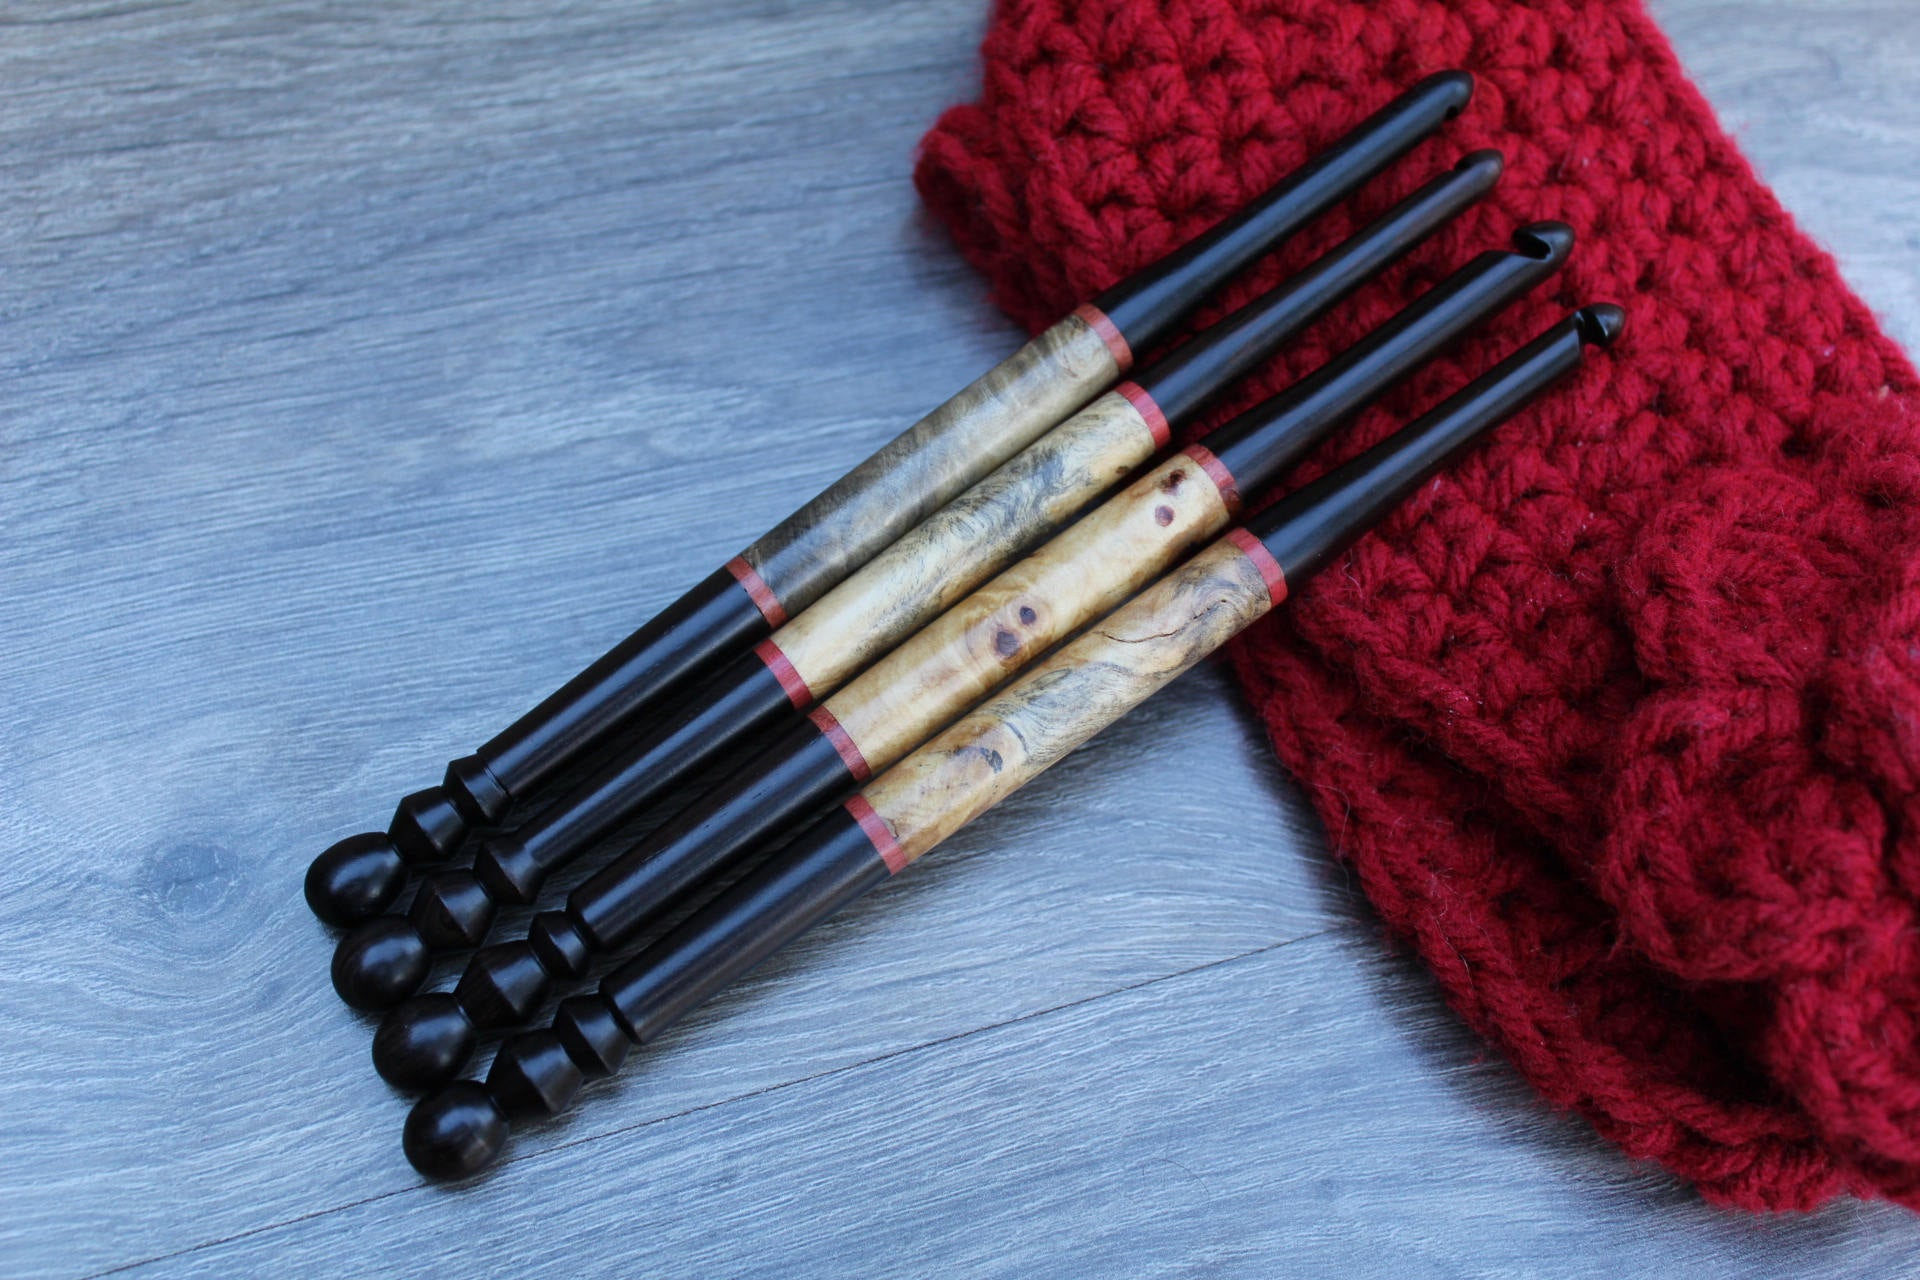 Size M-K-J-I Crochet Hook, Crochet hook set , Handmade set of Crochet hook, Hand Turned wood Crochet Hook, Wood Crochet hook Set